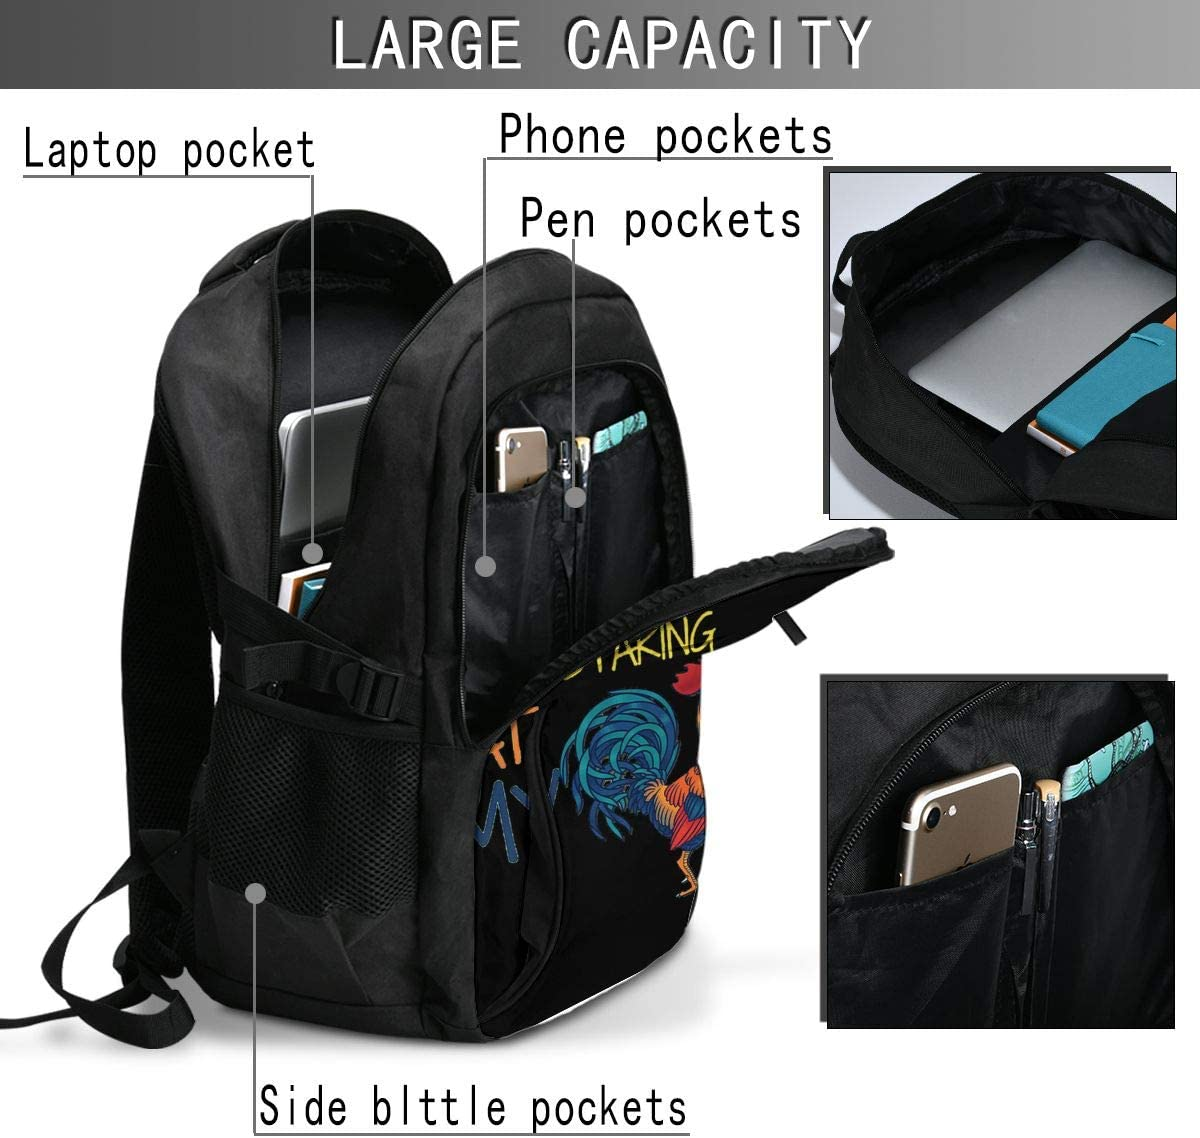 Fits For13,16 Inch Laptop USB Charging Port Traveling Backpack Student College Bag